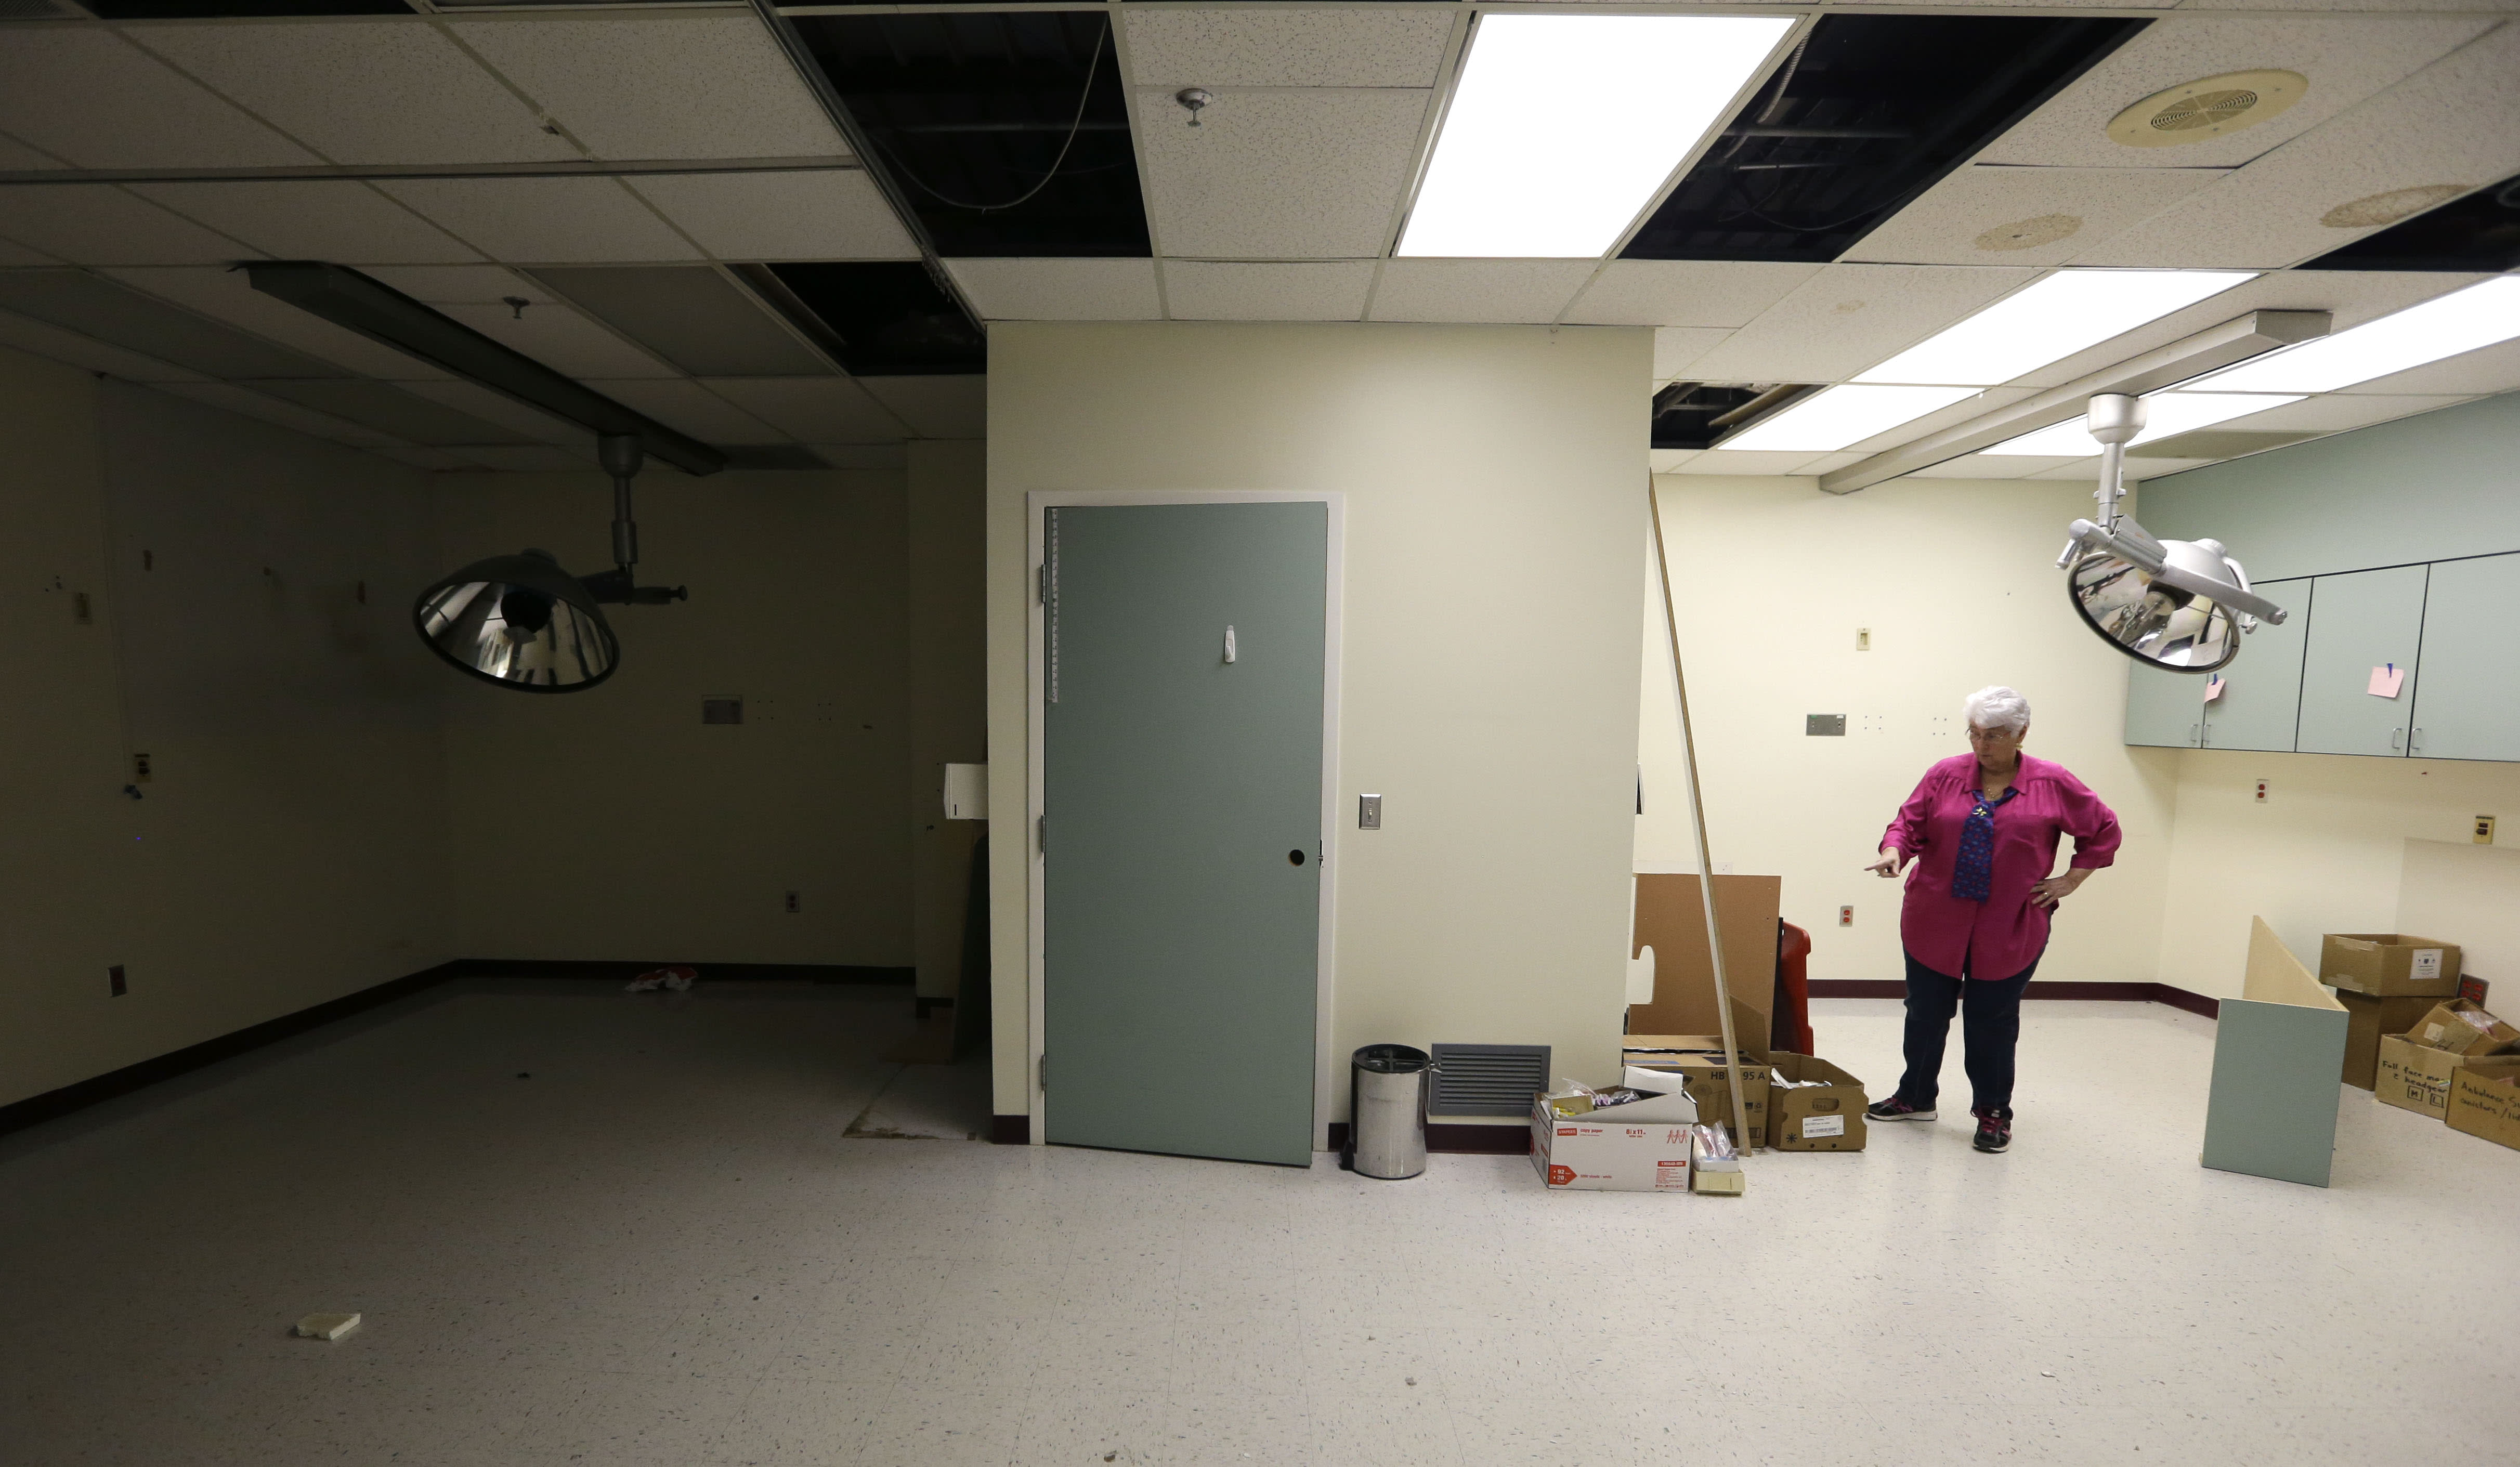 Rural hospitals struggle to stay open, adapt to changes